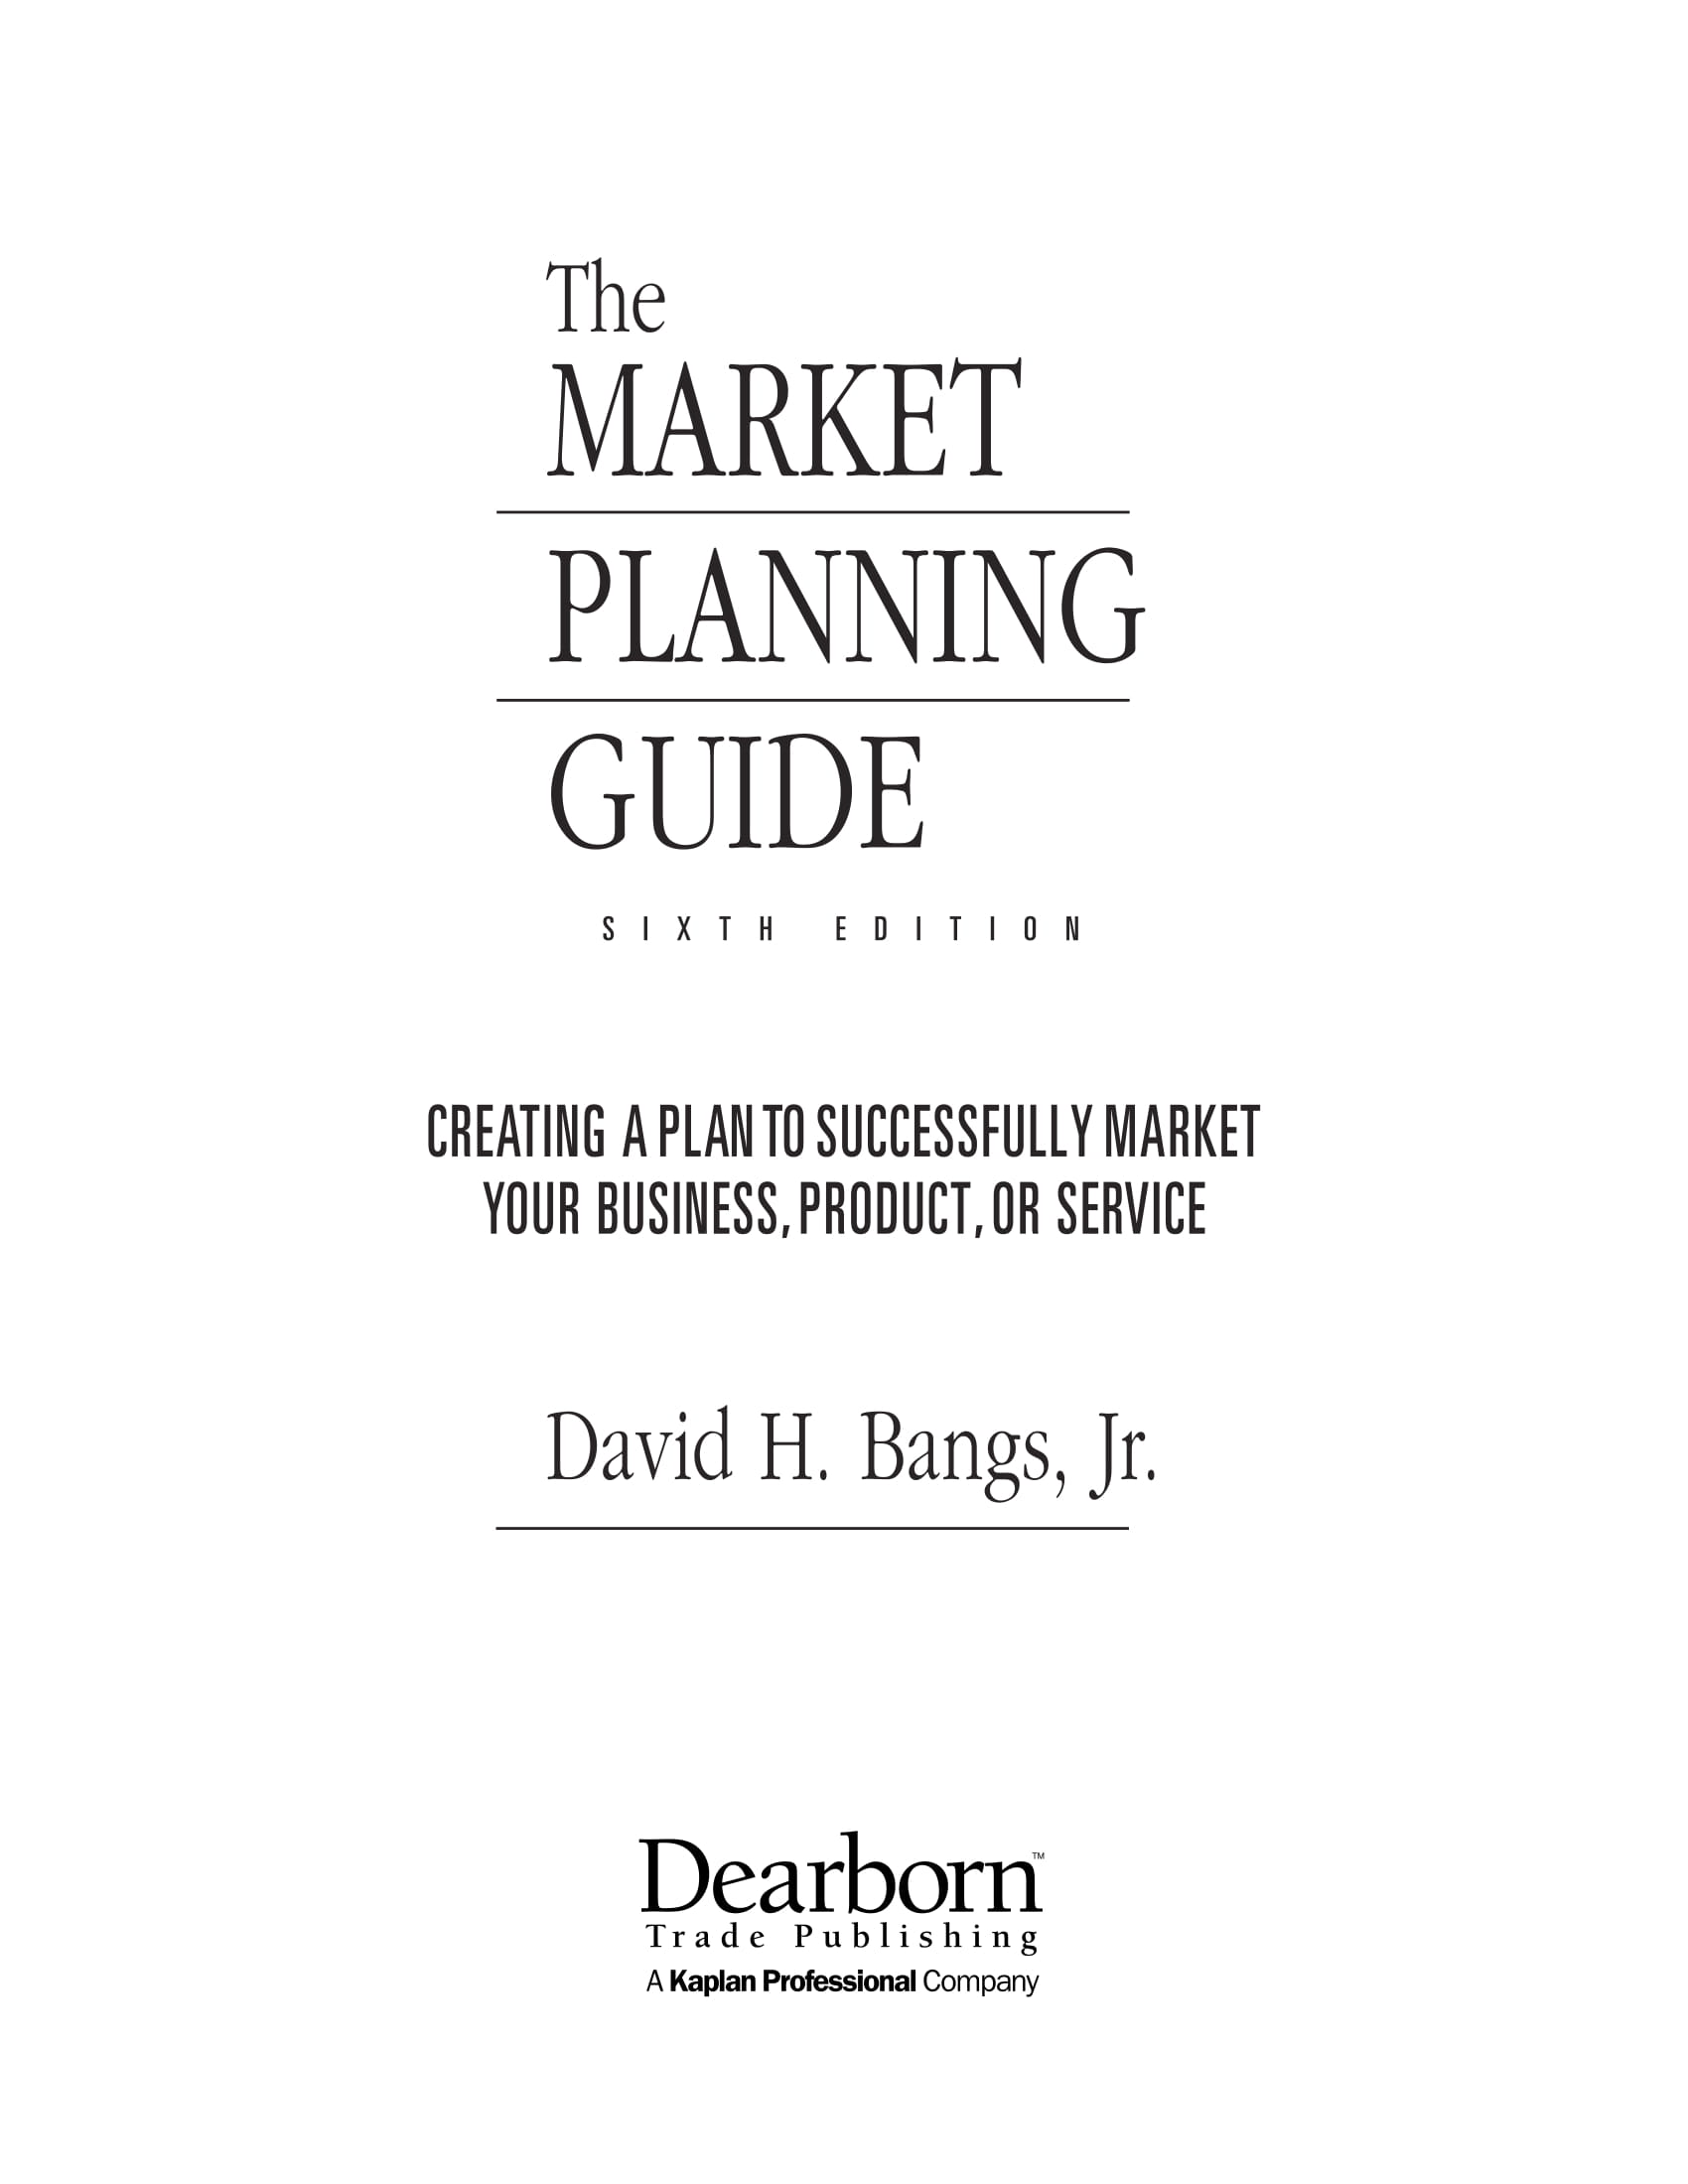 market planning guide for marketing an accounting firms business and services example 001